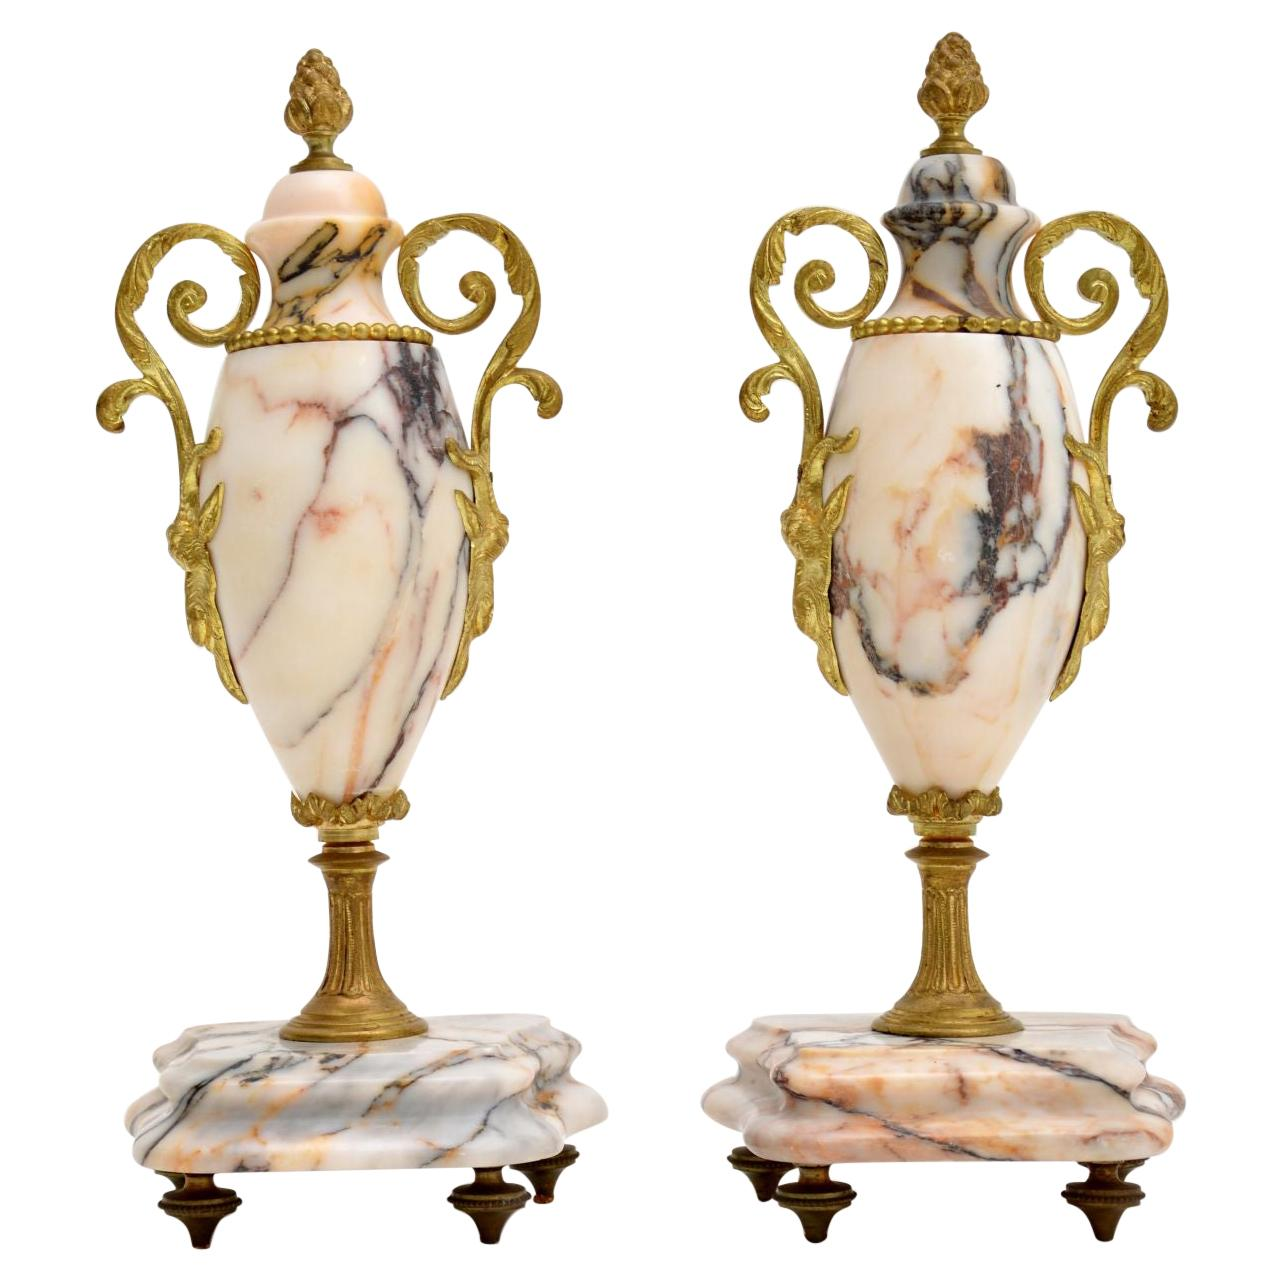 Pair of Antique French Marble & Gilt Bronze Urns